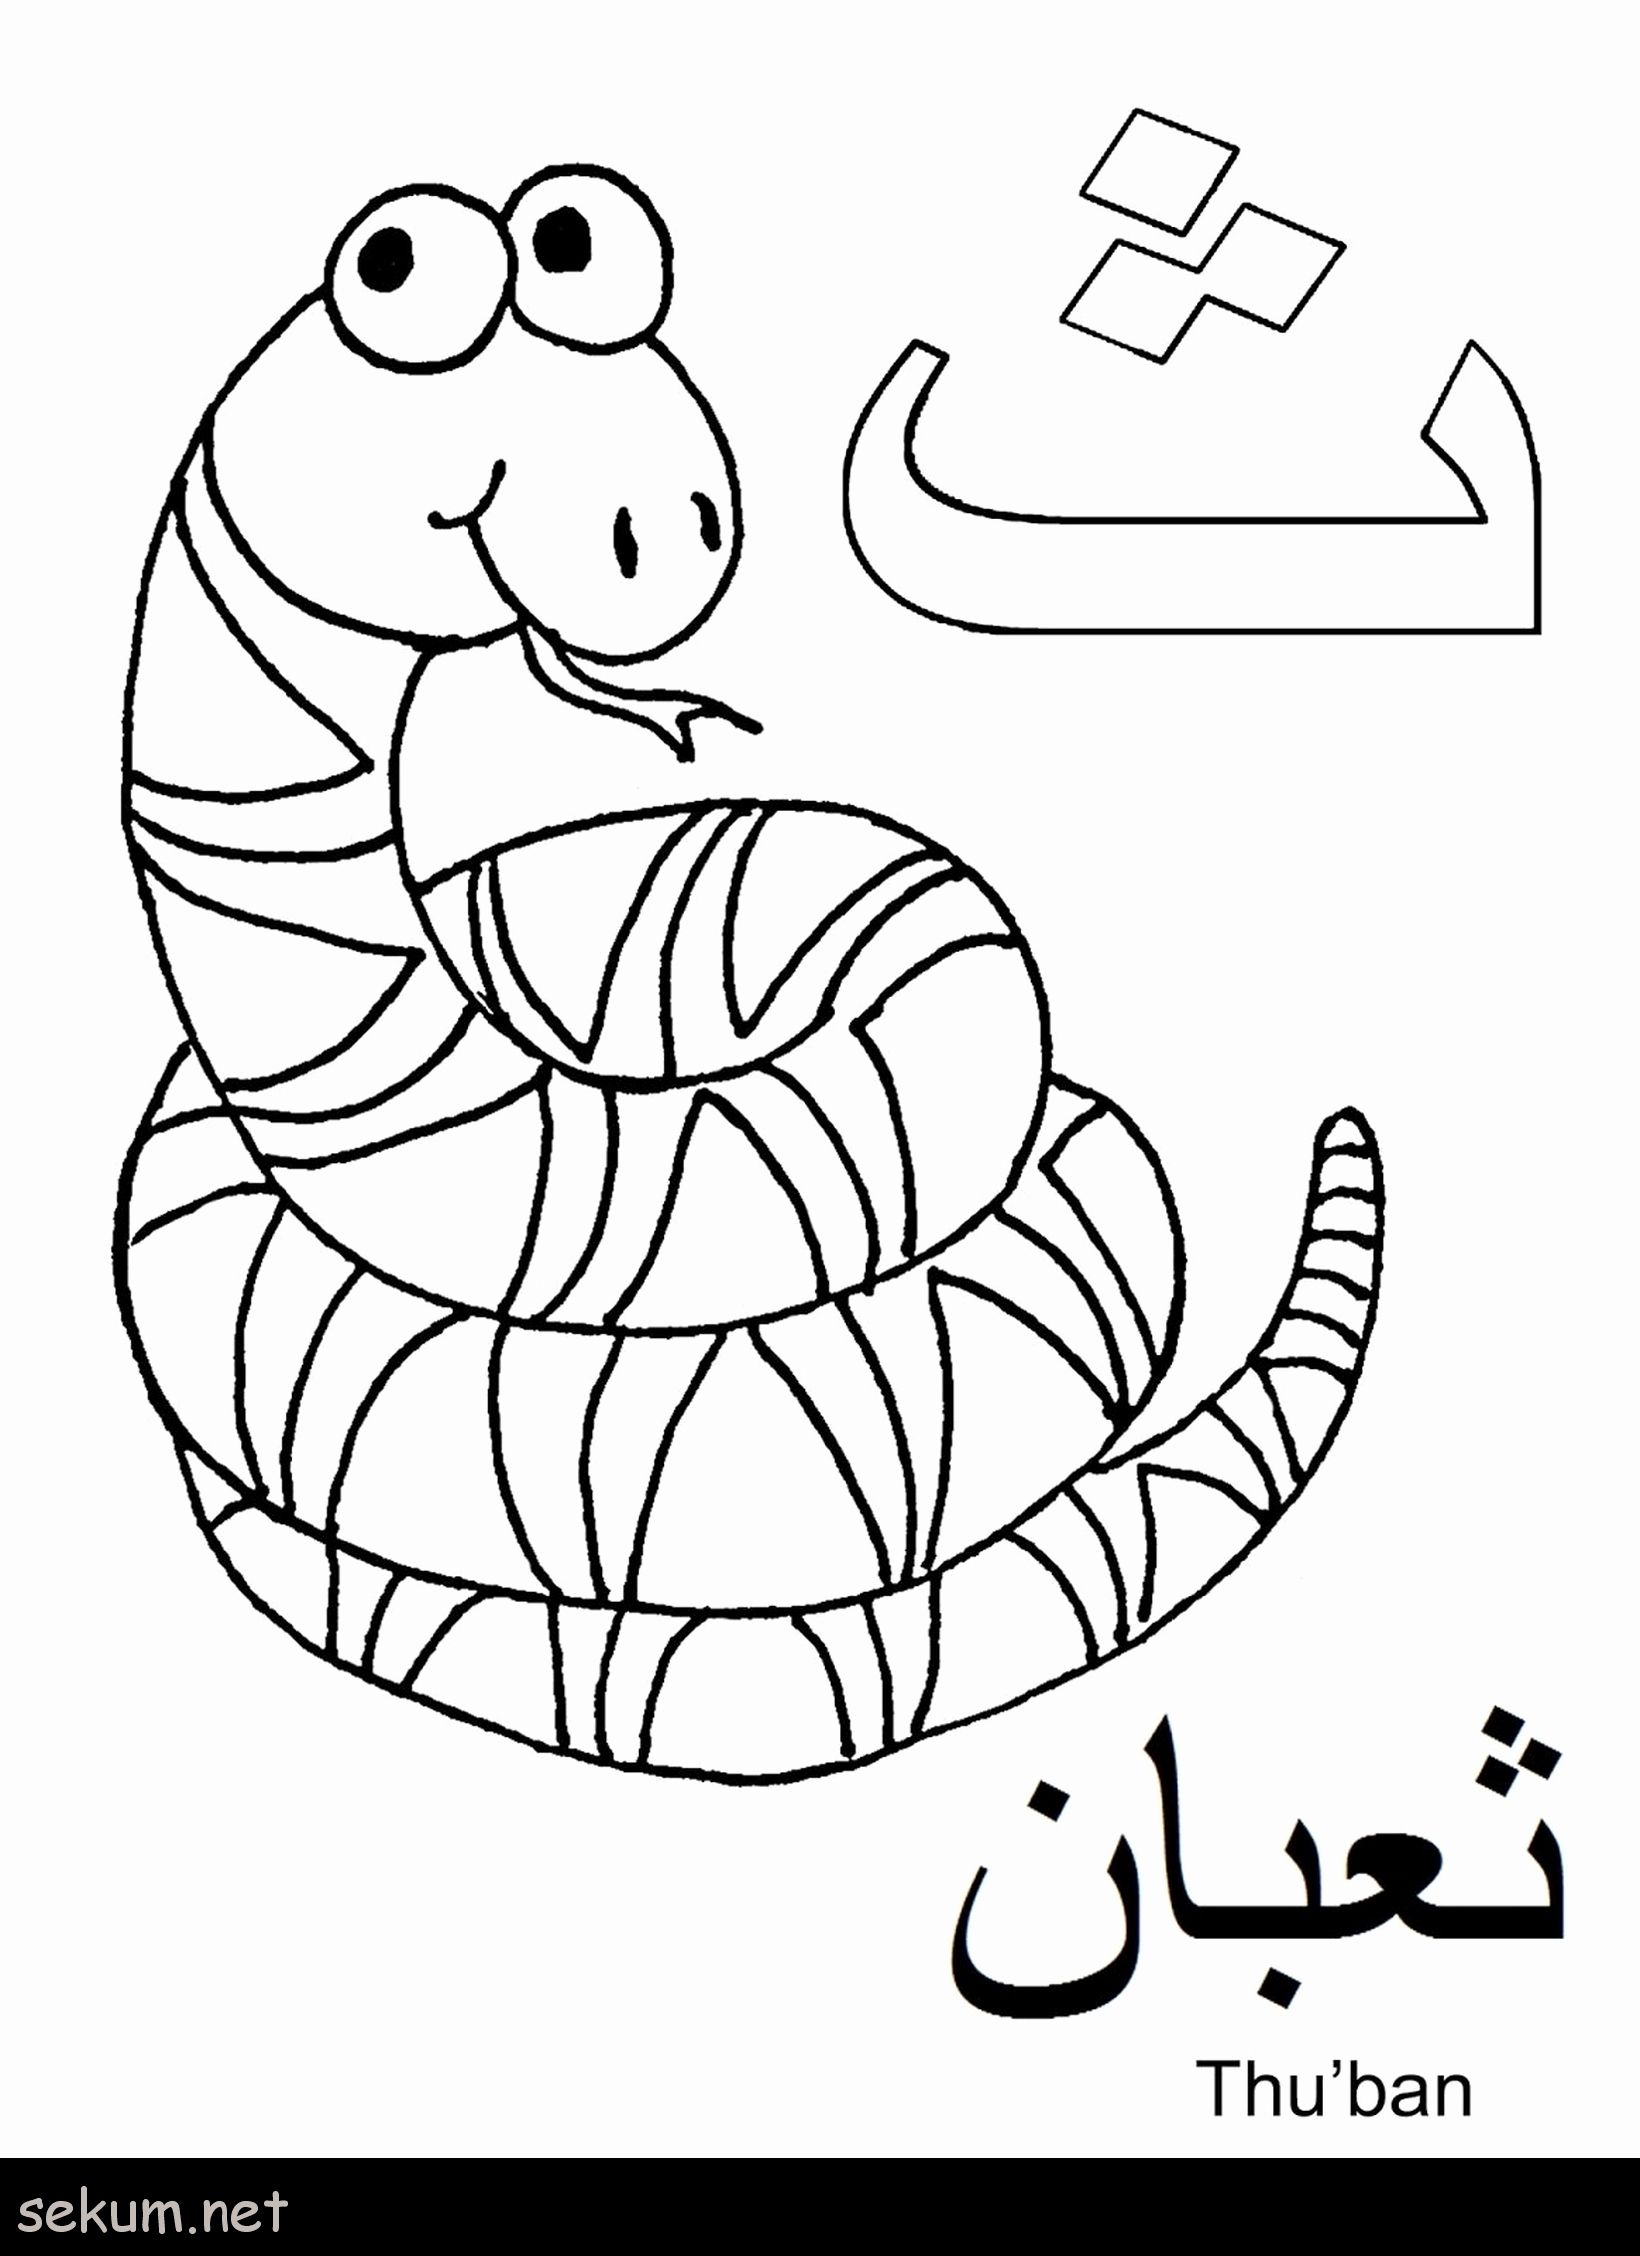 - Alphabet Coloring Pages Pdf In 2020 (With Images) Arabic